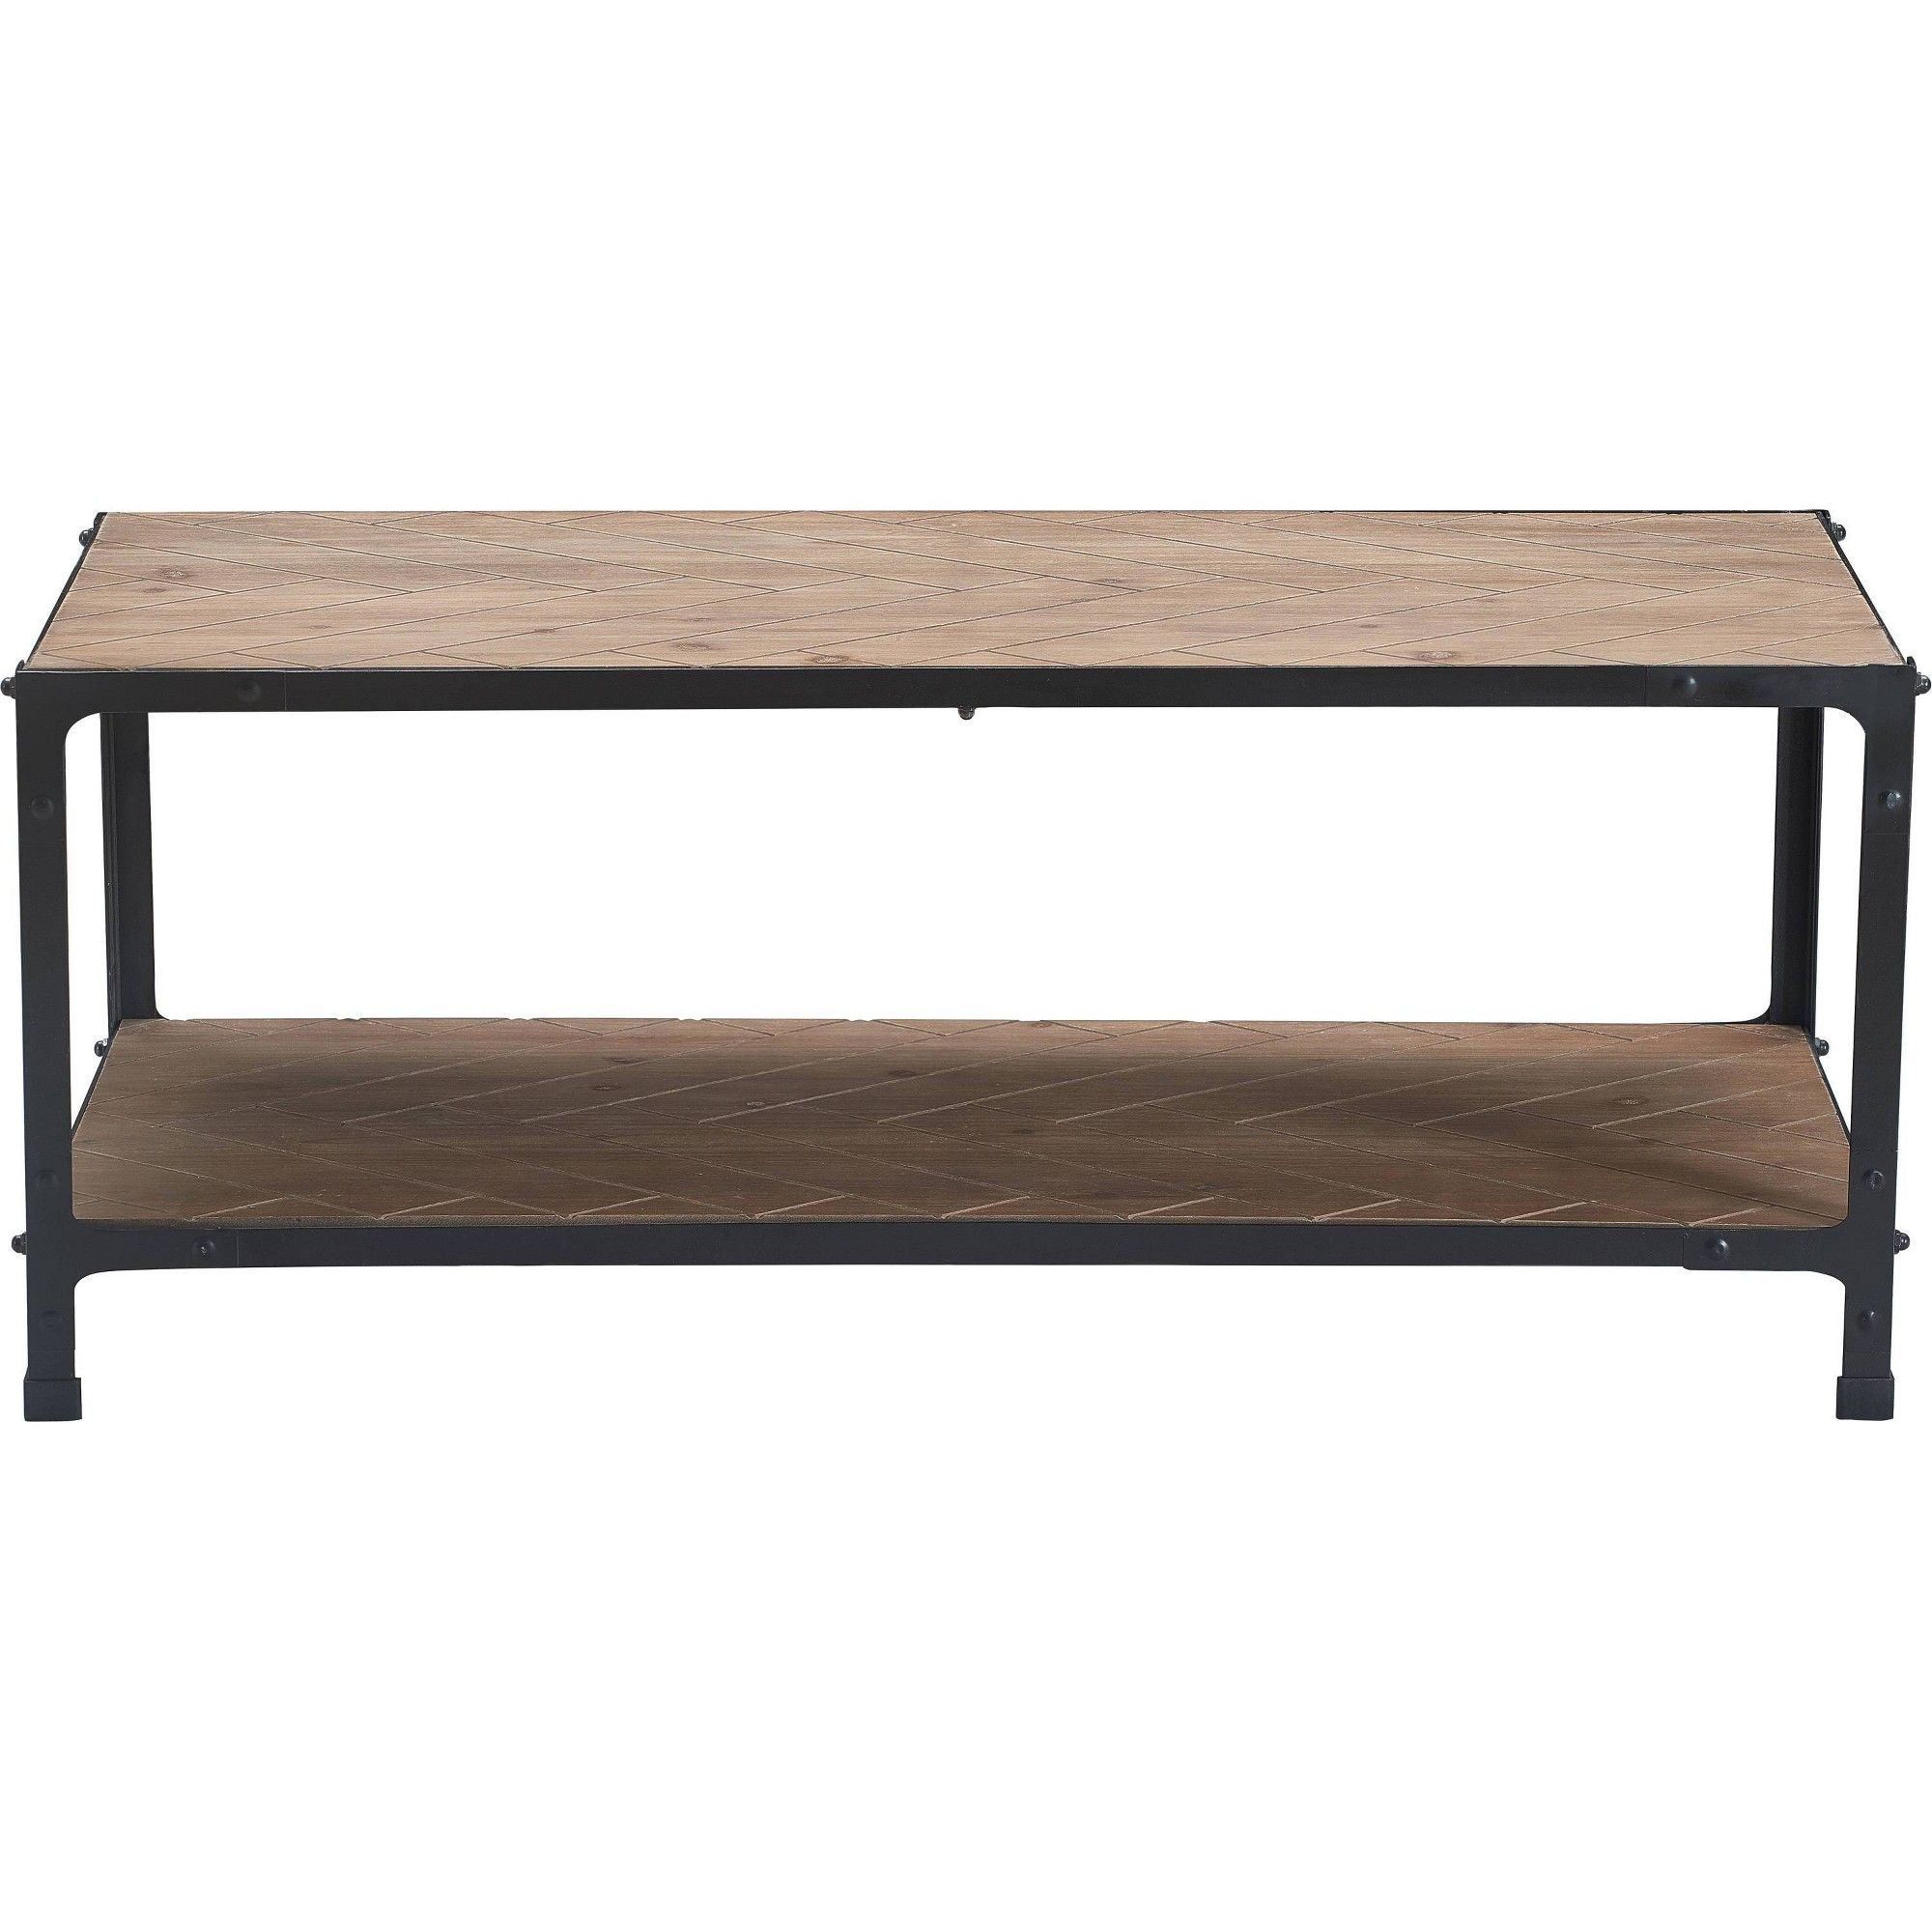 Farmhouse Coffee Table Wood And Black Metal Truly Home Brown In 2020 Barrel Coffee Table Brass Coffee Table Modern Coffee Tables